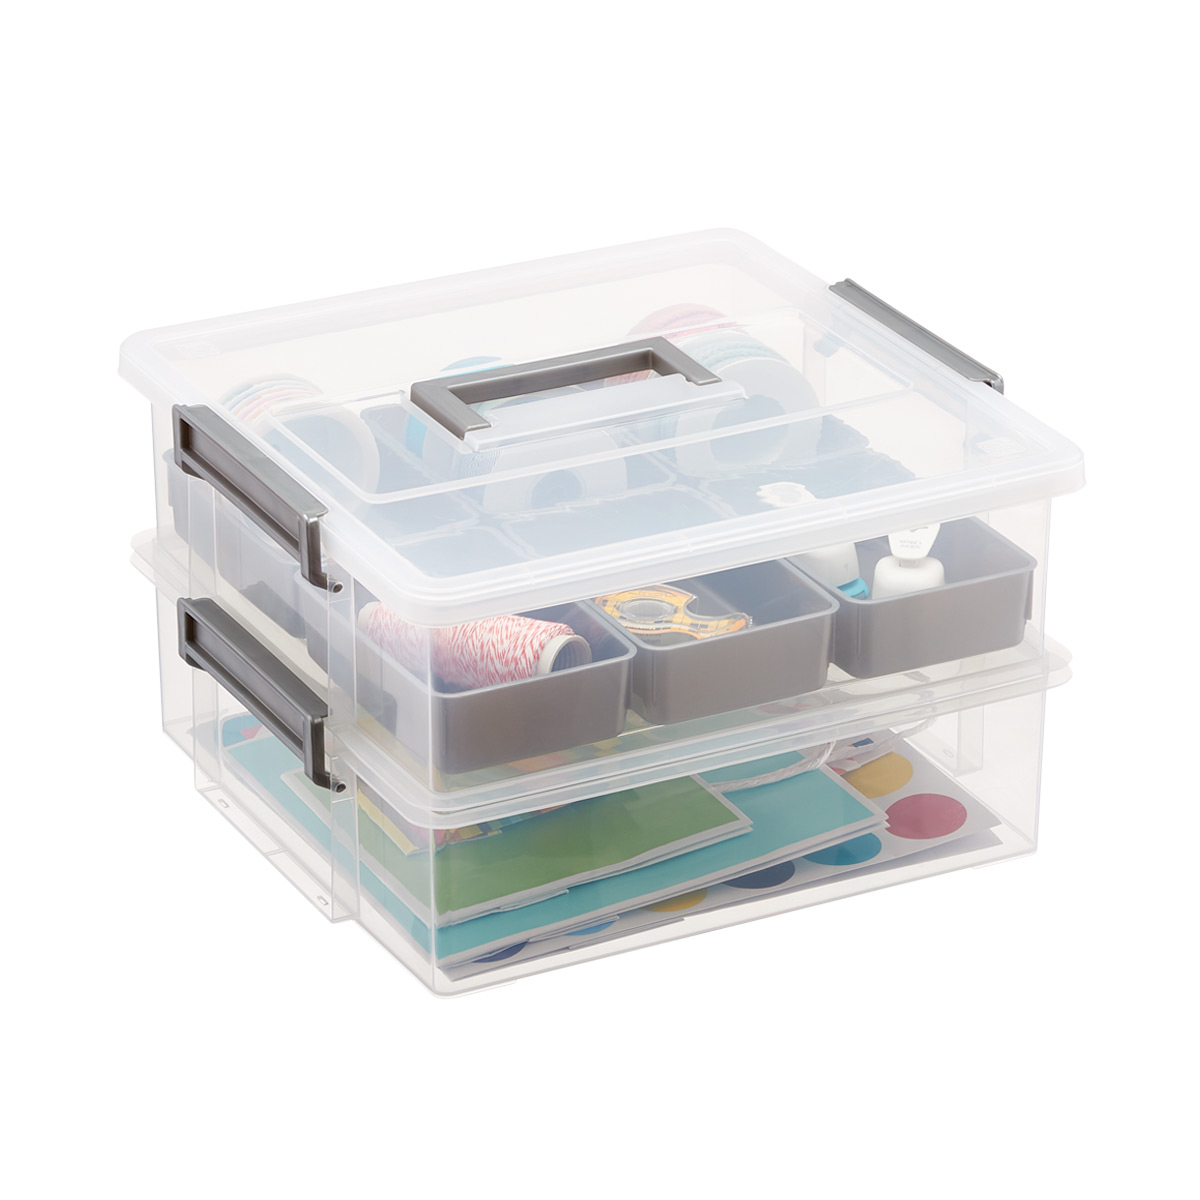 2-Layer Gift Packaging Organizer